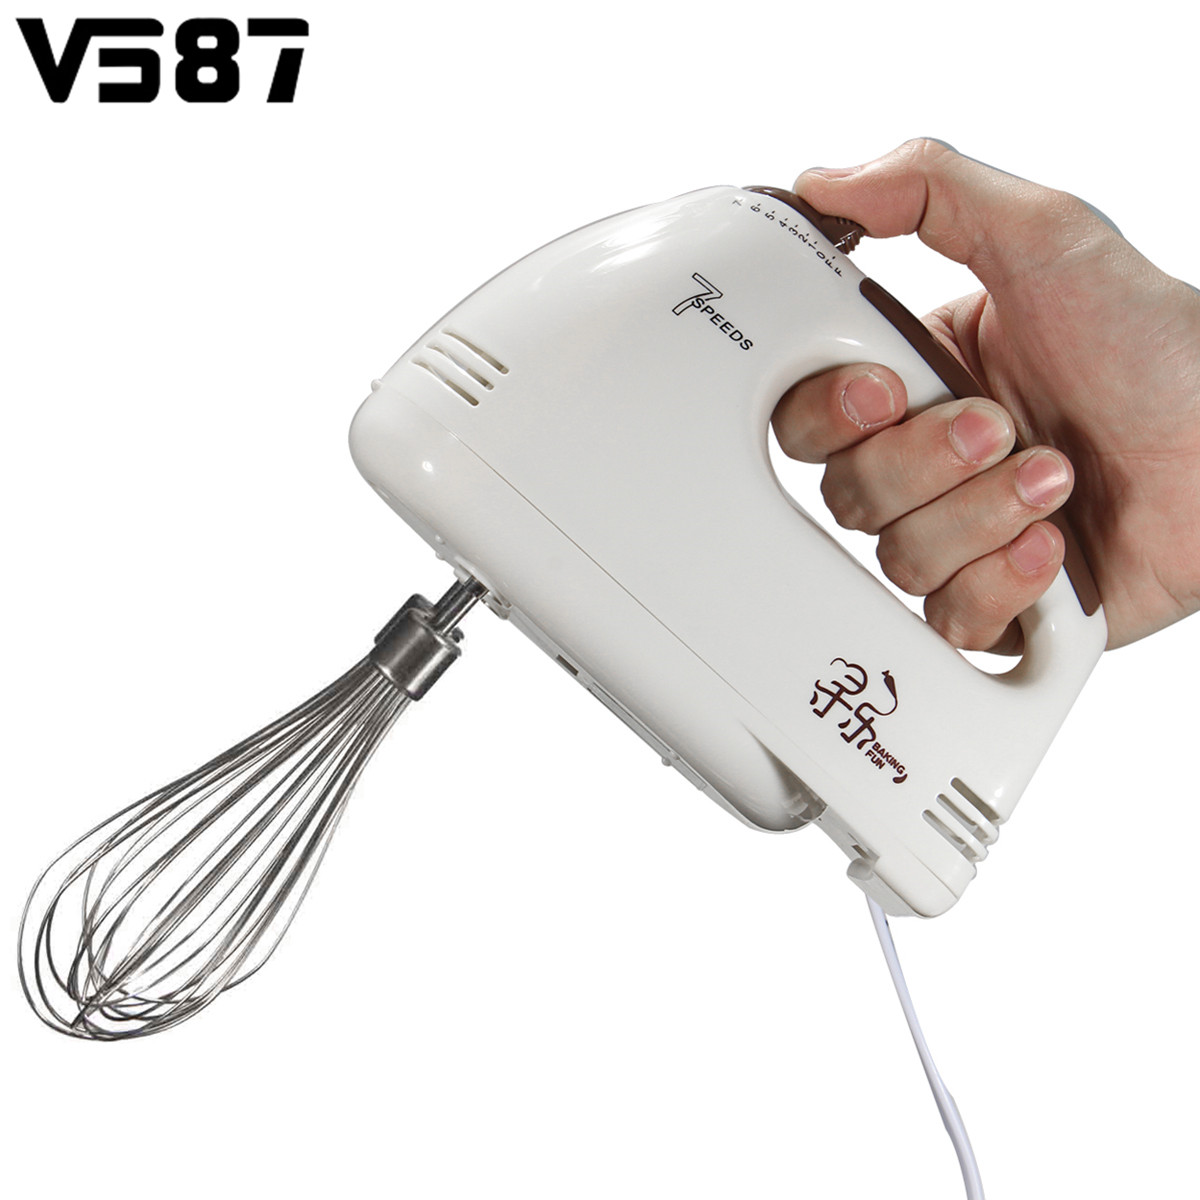 7 Speed Handheld Electric Food Blender Double Whisk Eggs Mixer ...